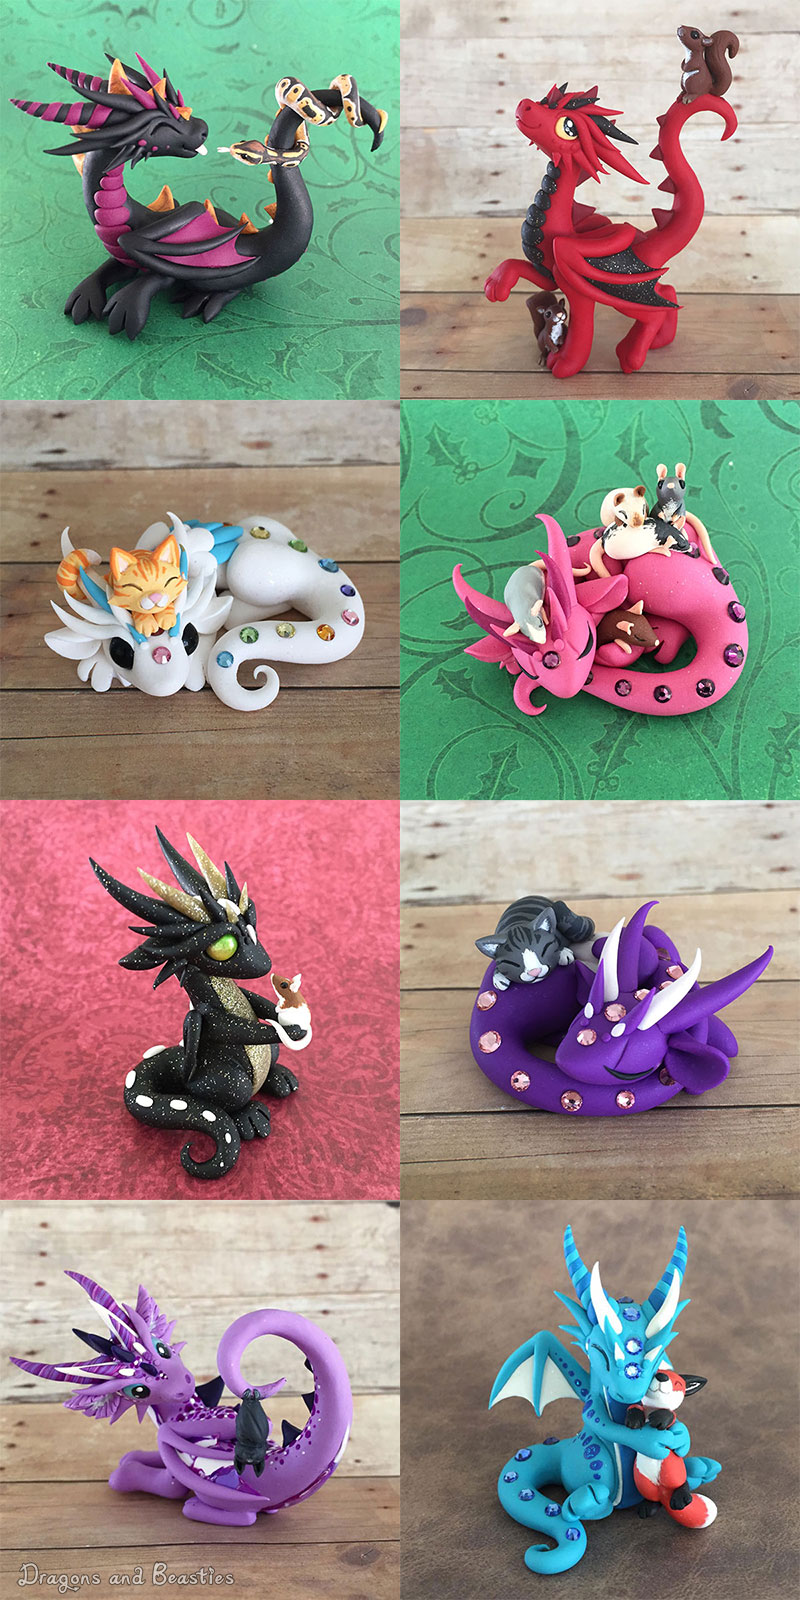 Dragon Pets Sale August 14 by DragonsAndBeasties